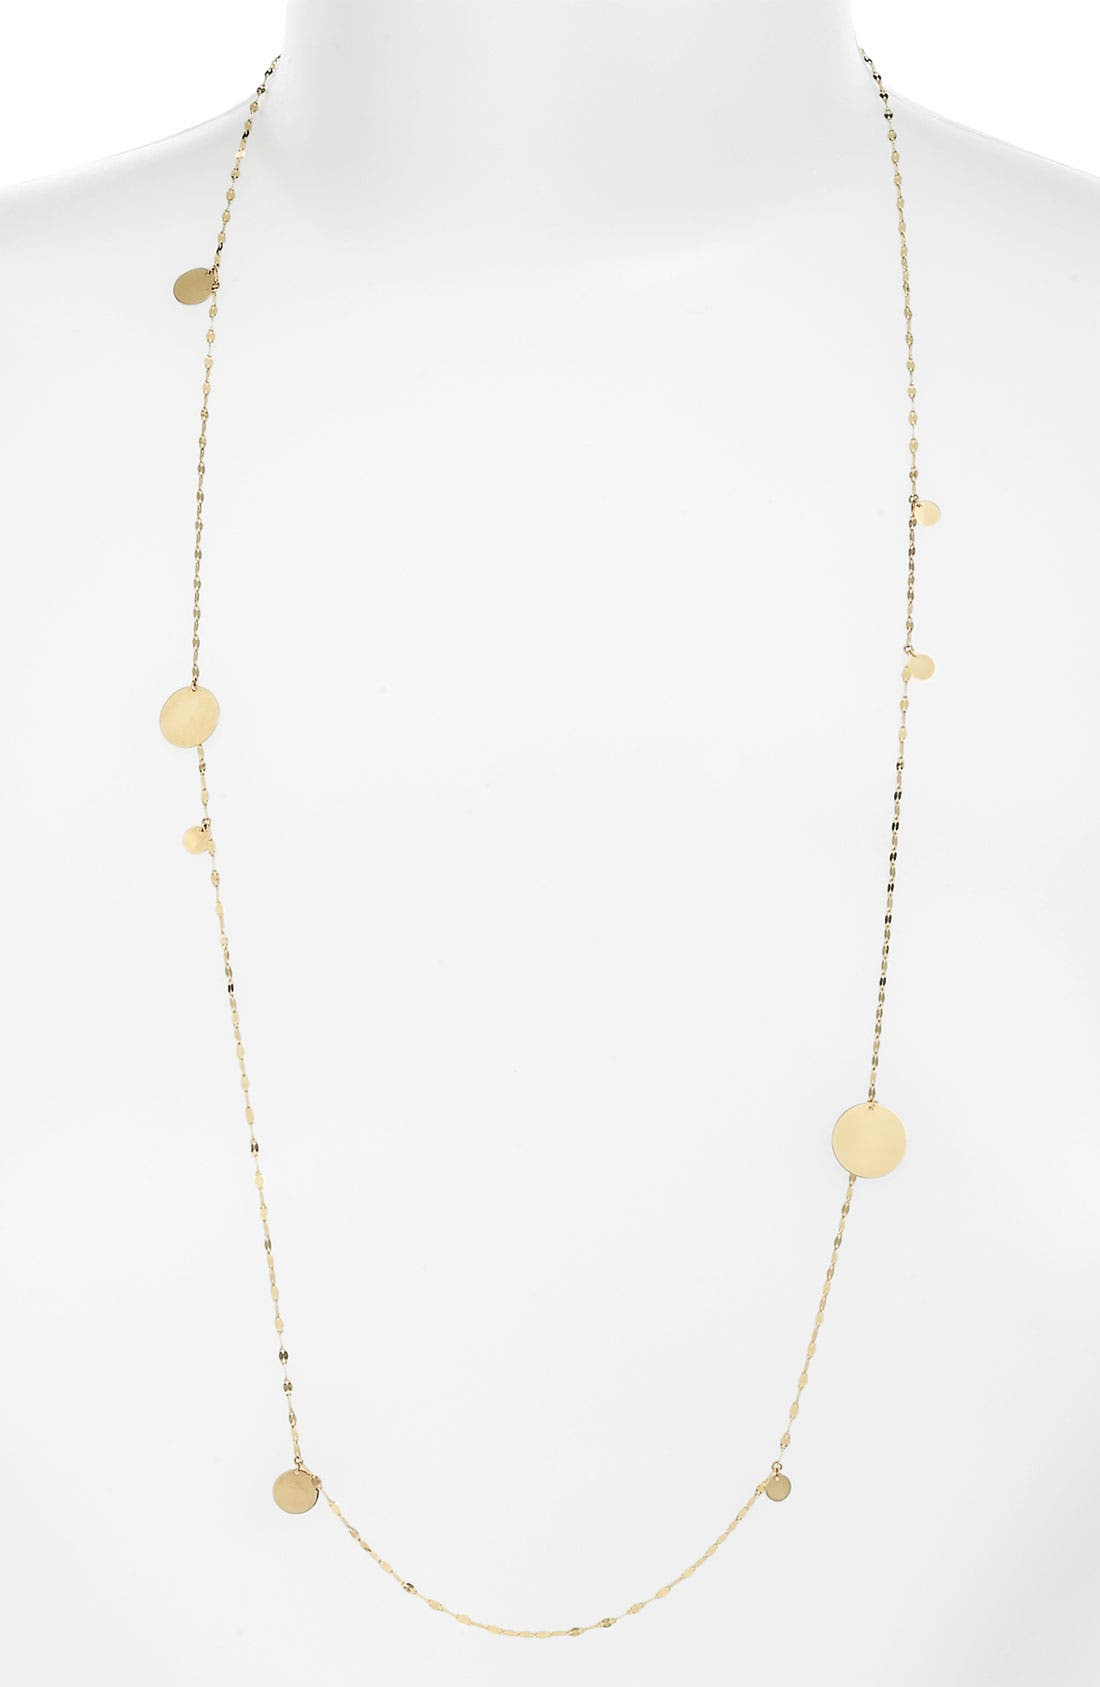 Alternate Image 1 Selected - Lana Jewelry 'Gypsy' Long Disc Necklace